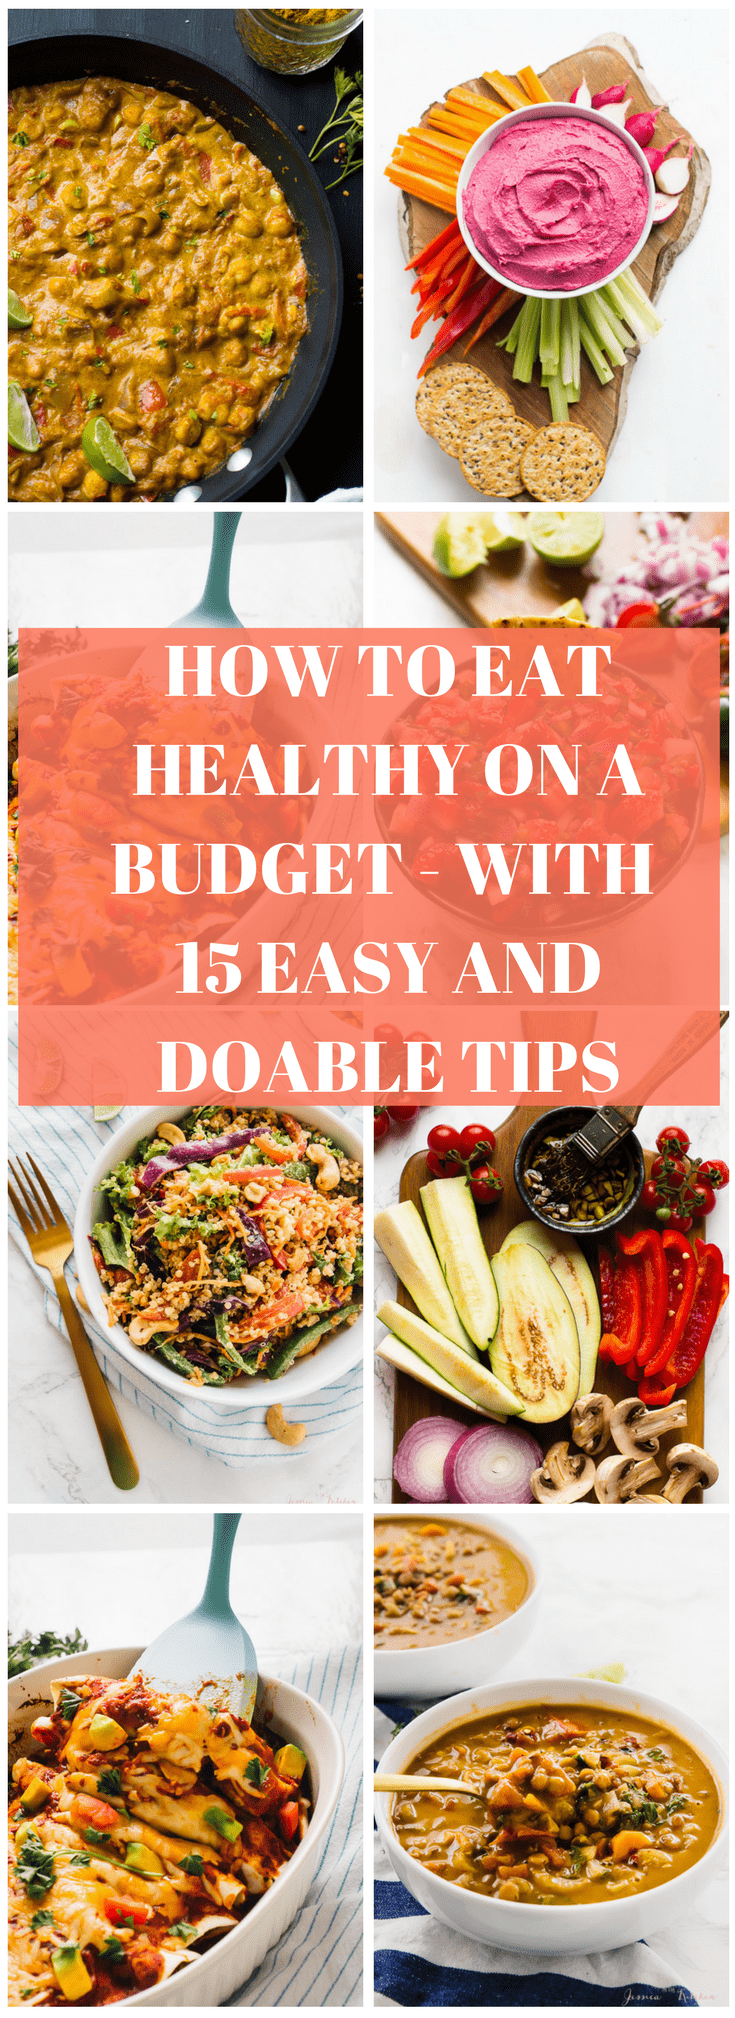 Photo On My Instagram Page, I Got One Of The Most Popular Questions I  Get On My Blog From Readers And In Regular Life €�is It Expensive To Eat  Healthy?